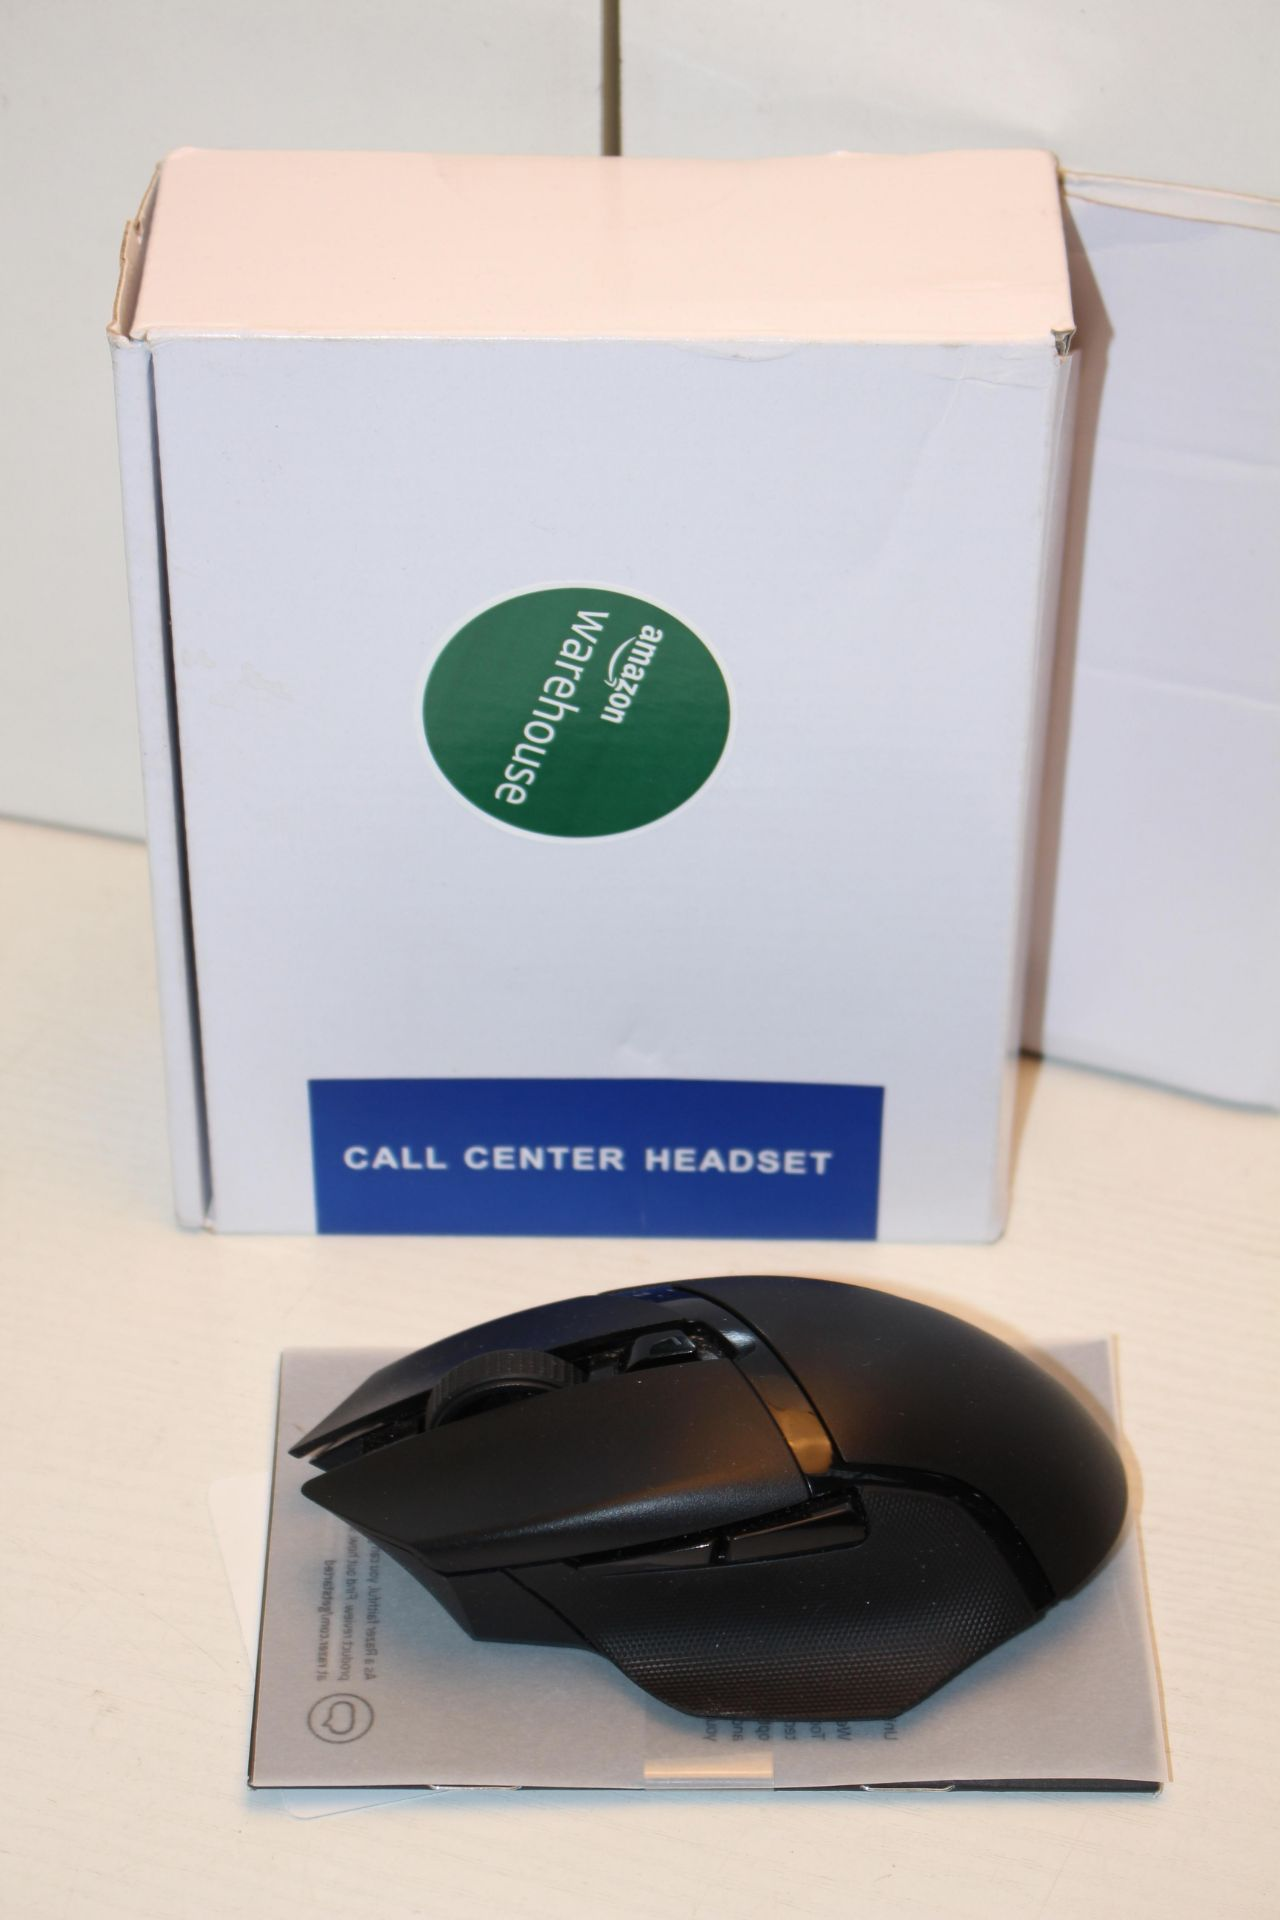 2X ASSORTED ITEMS TO INCLUDE RAZER GAMING MOUSE & OTHER (IMAGE DEPICTS STOCK)Condition